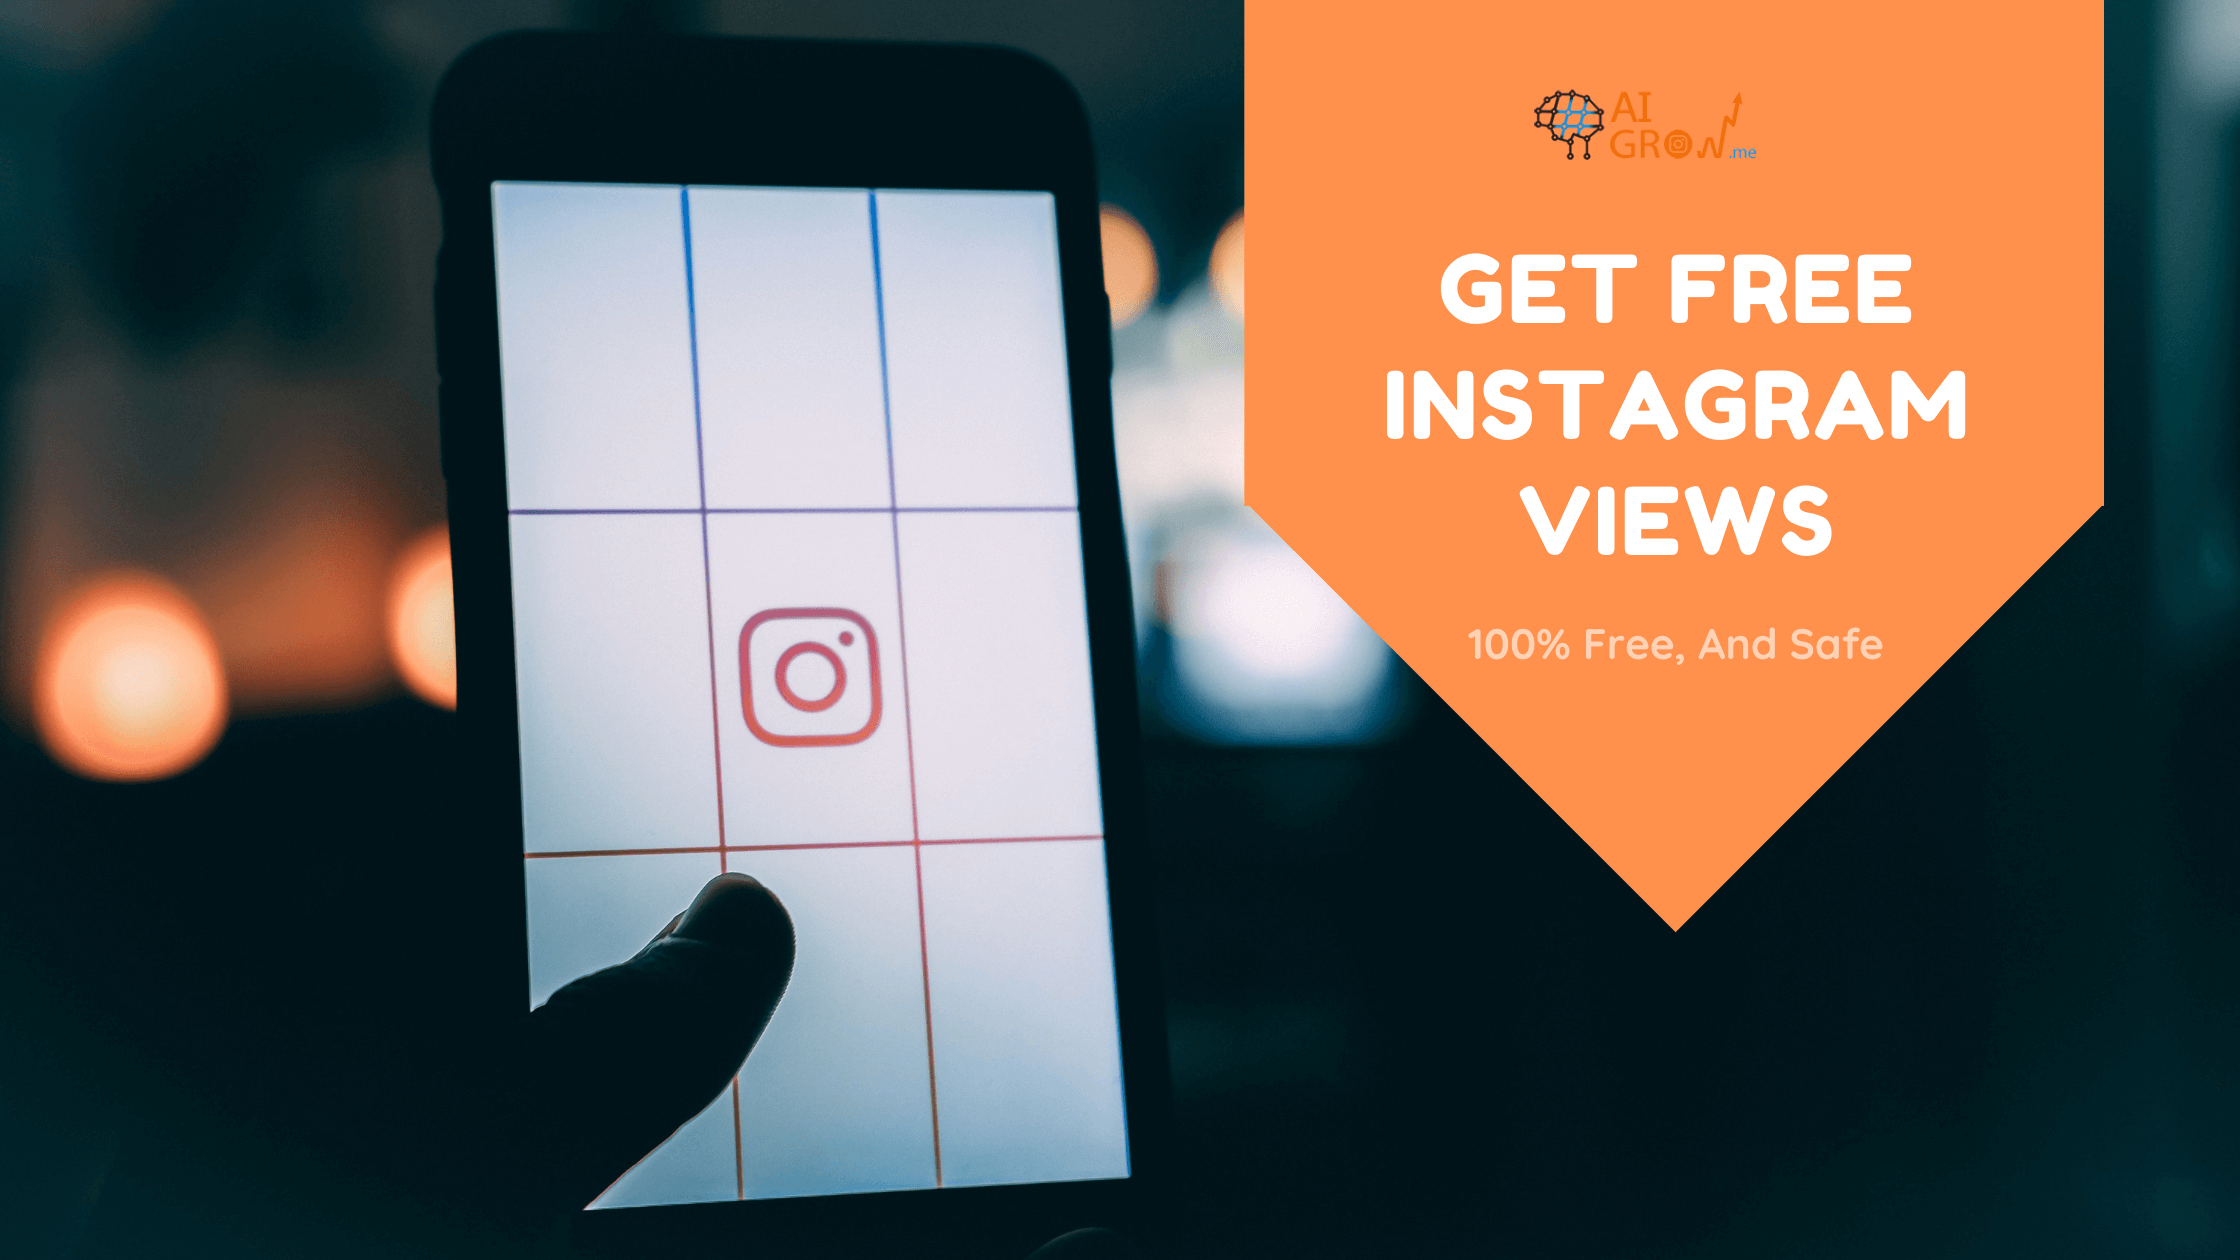 Get Free Instagram Views | 100% Free, And Safe